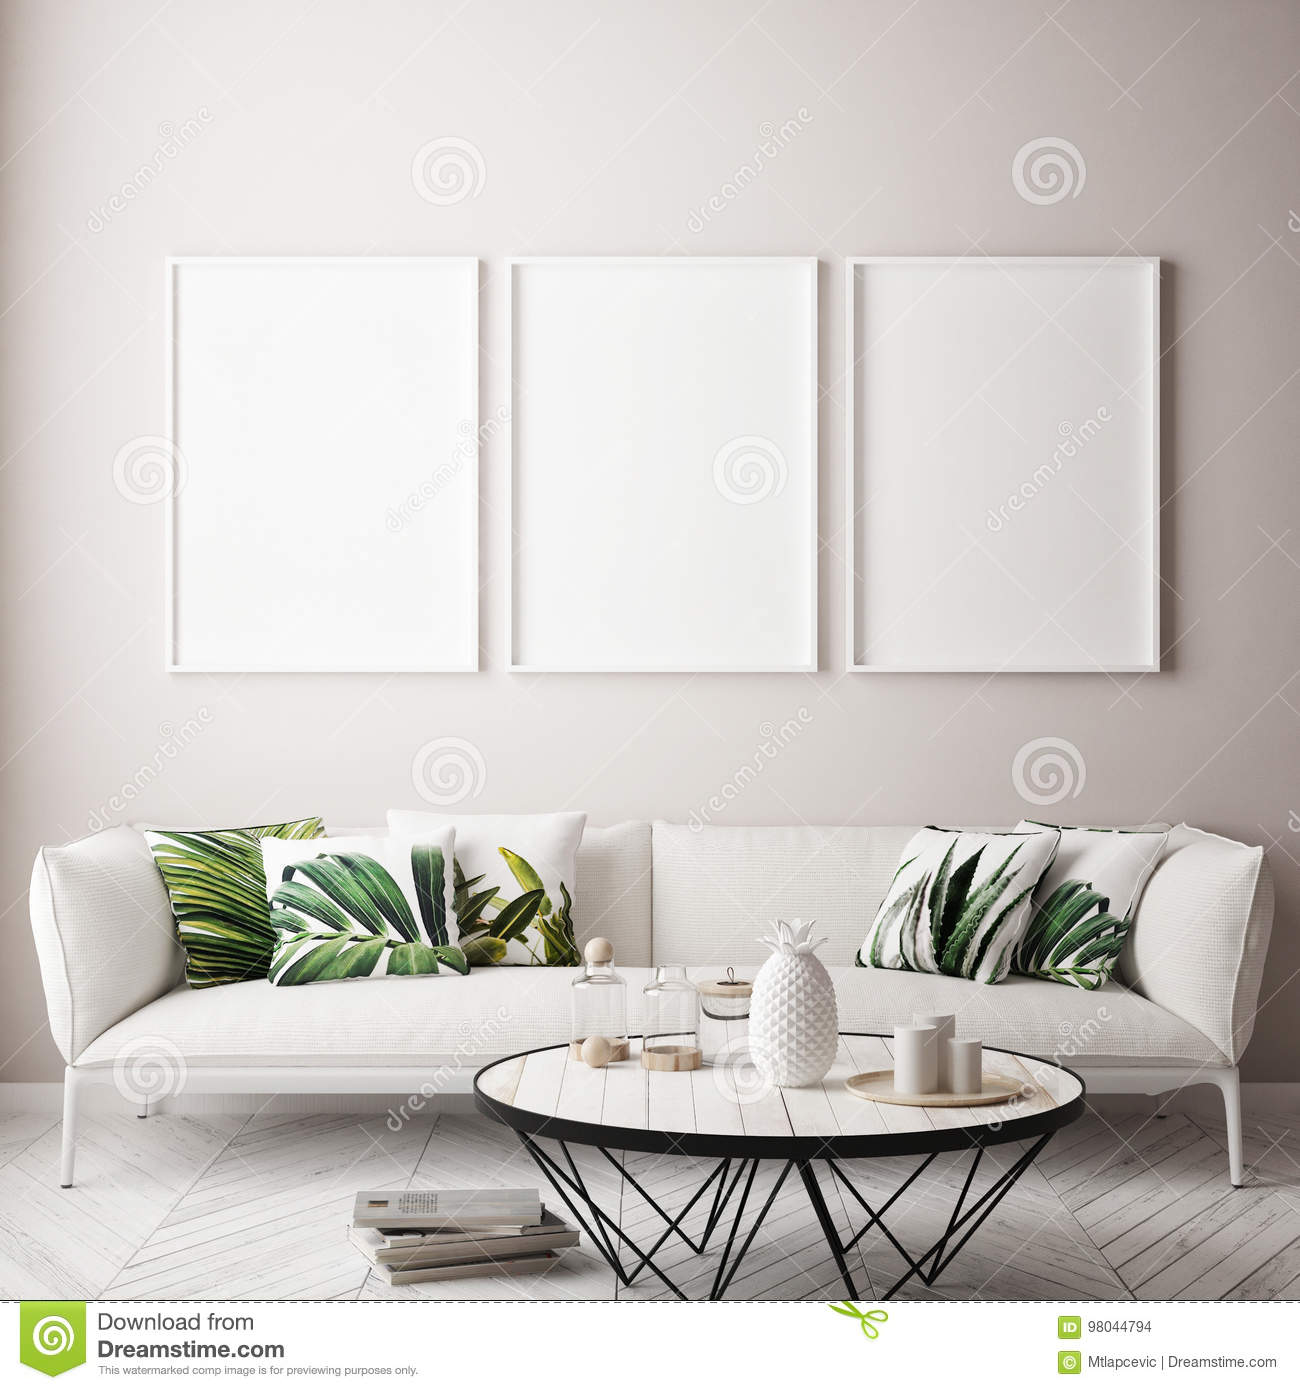 Mock up poster frame in tropical interior background, modern Caribbean style